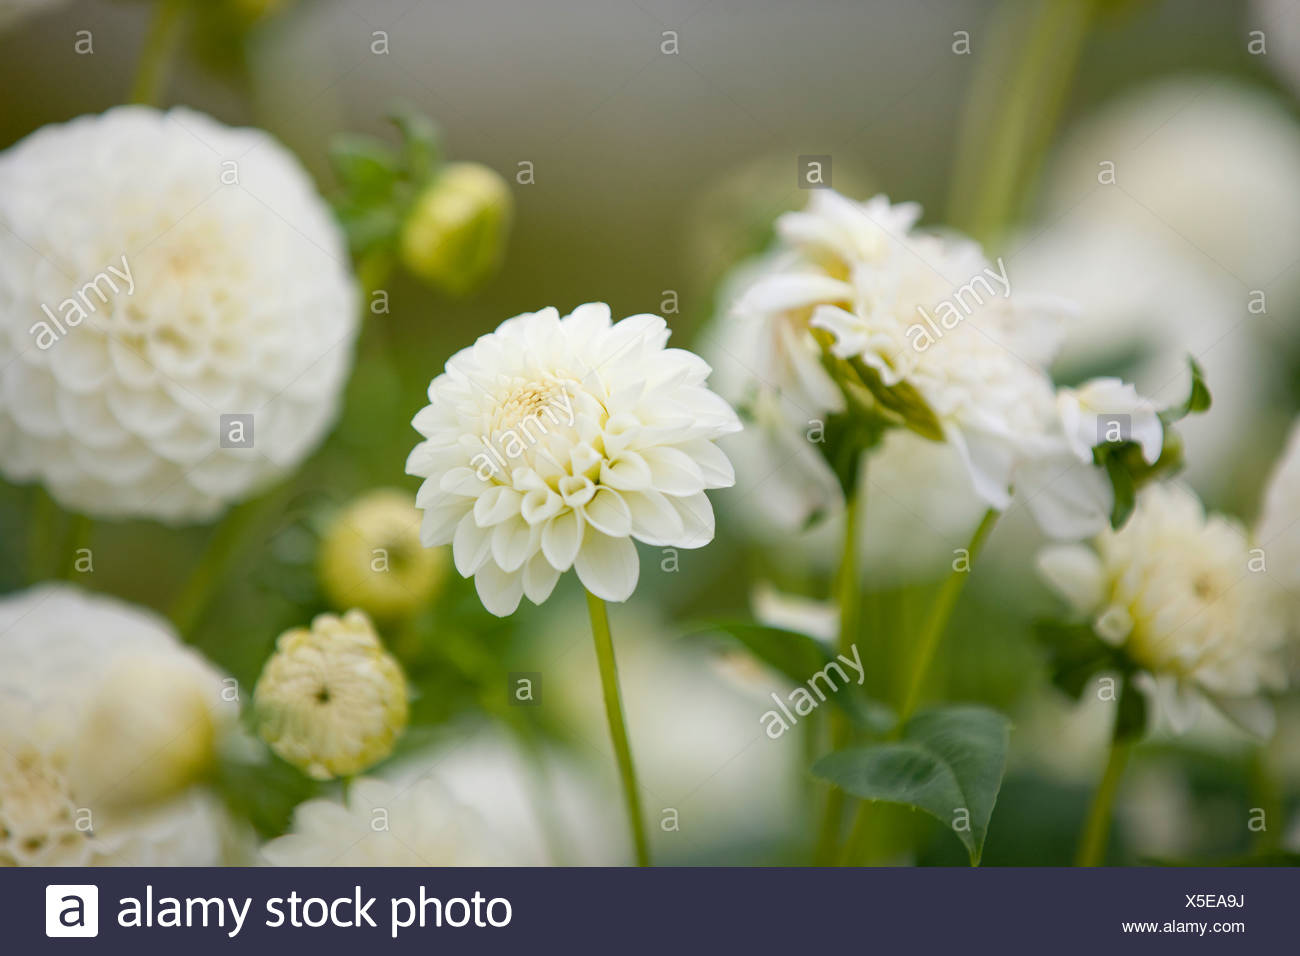 White dahlia flowers in bloom stock photo 278754606 alamy white dahlia flowers in bloom izmirmasajfo